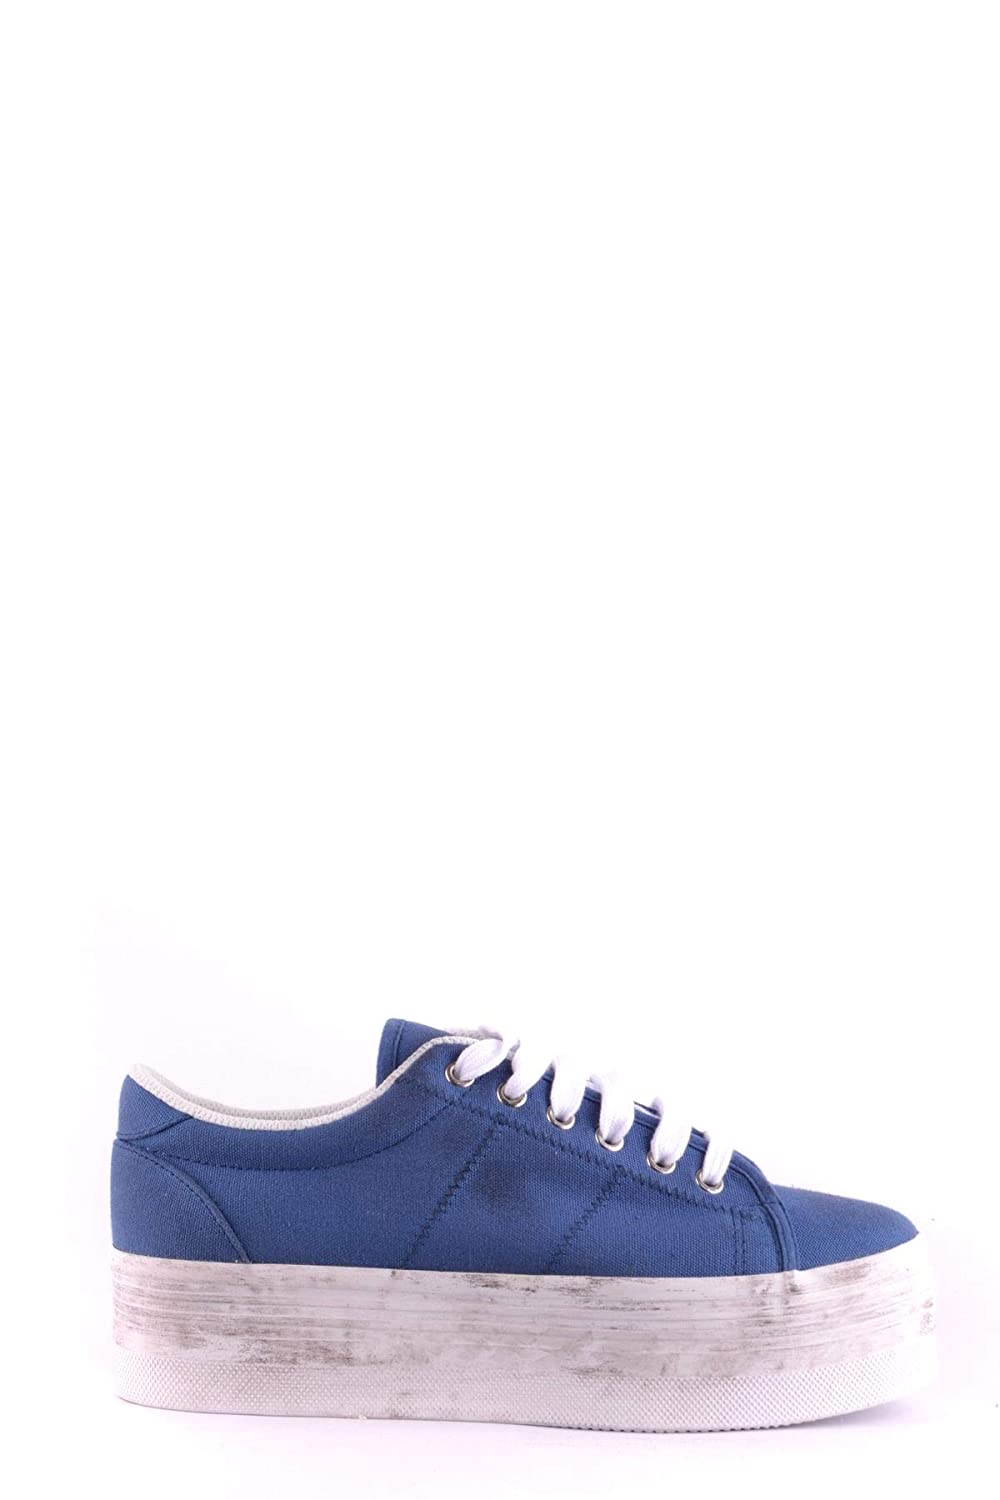 JC PLAY BY JEFFREY CAMPBELL Damen MCBI32650 Blau Stoff Turnschuhe